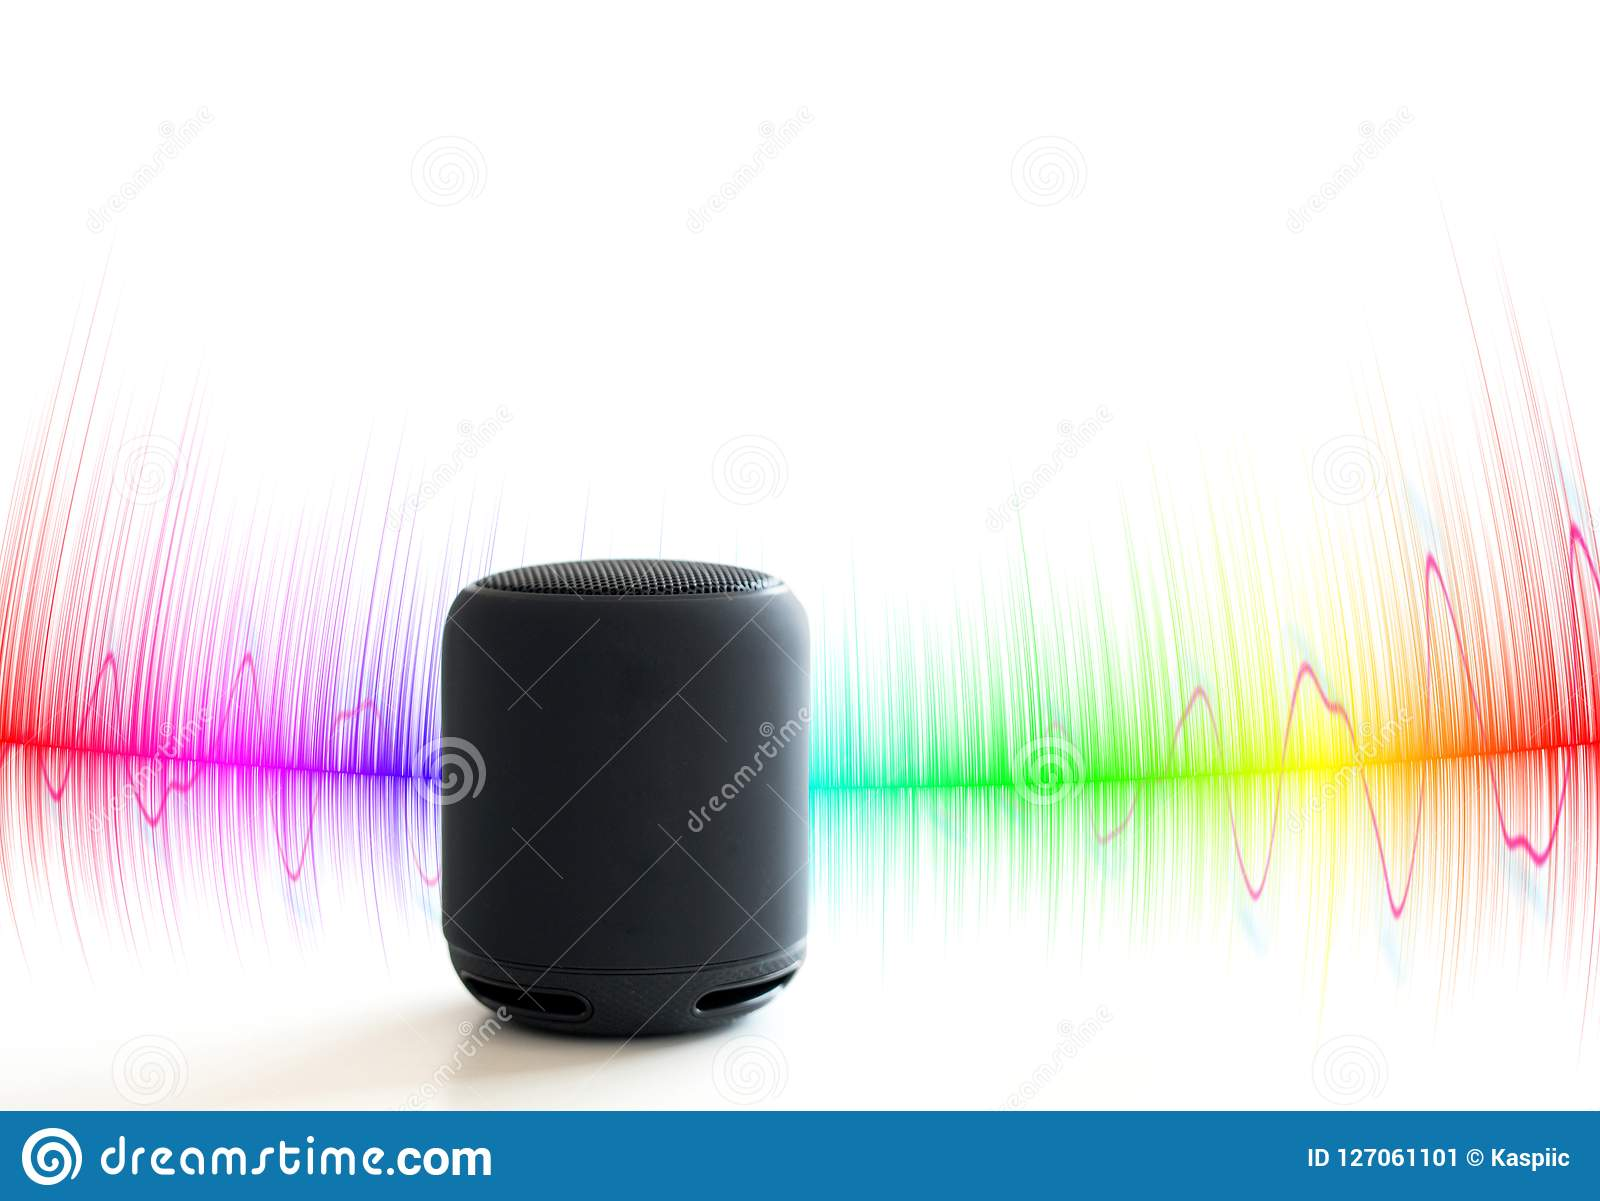 Smart speaker with colorful sound waves